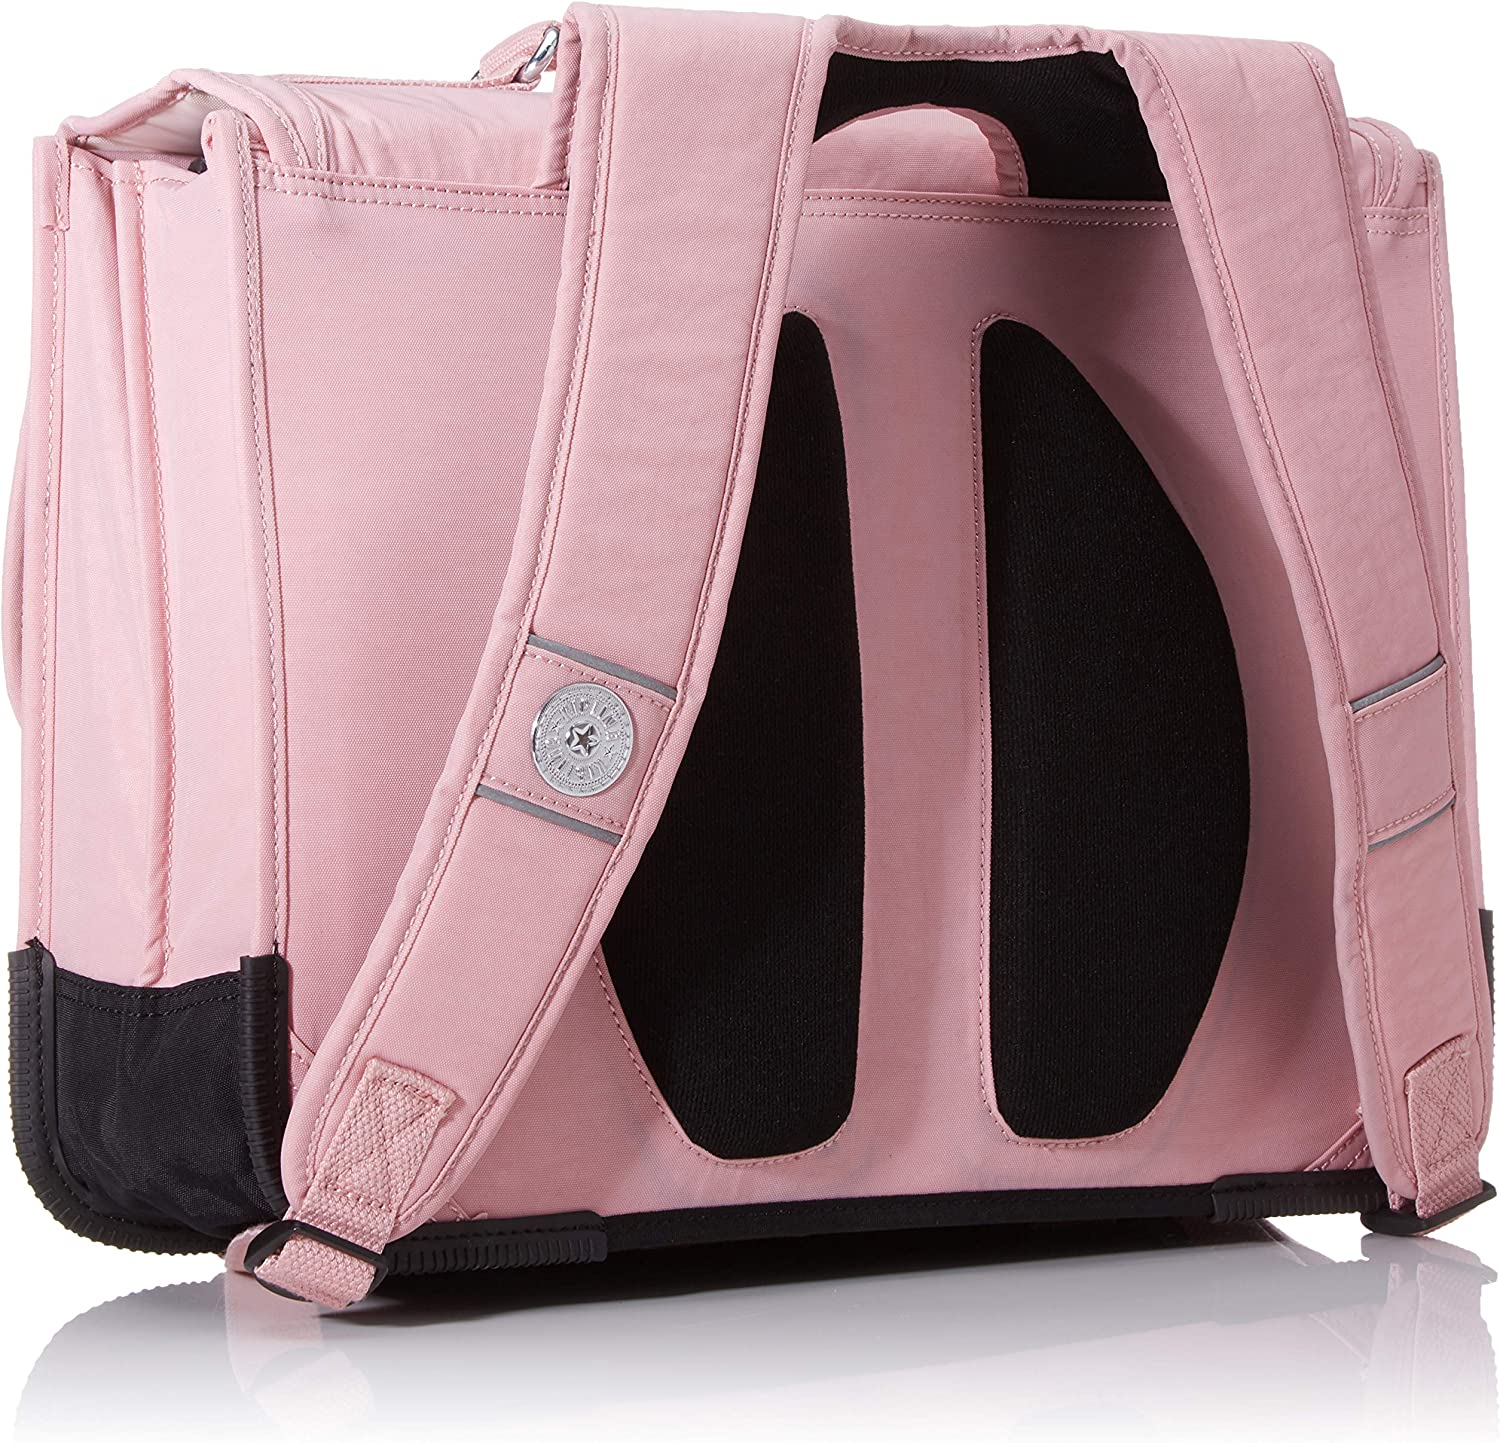 Kipling Preppy Luggage 15 L Bridal Rose